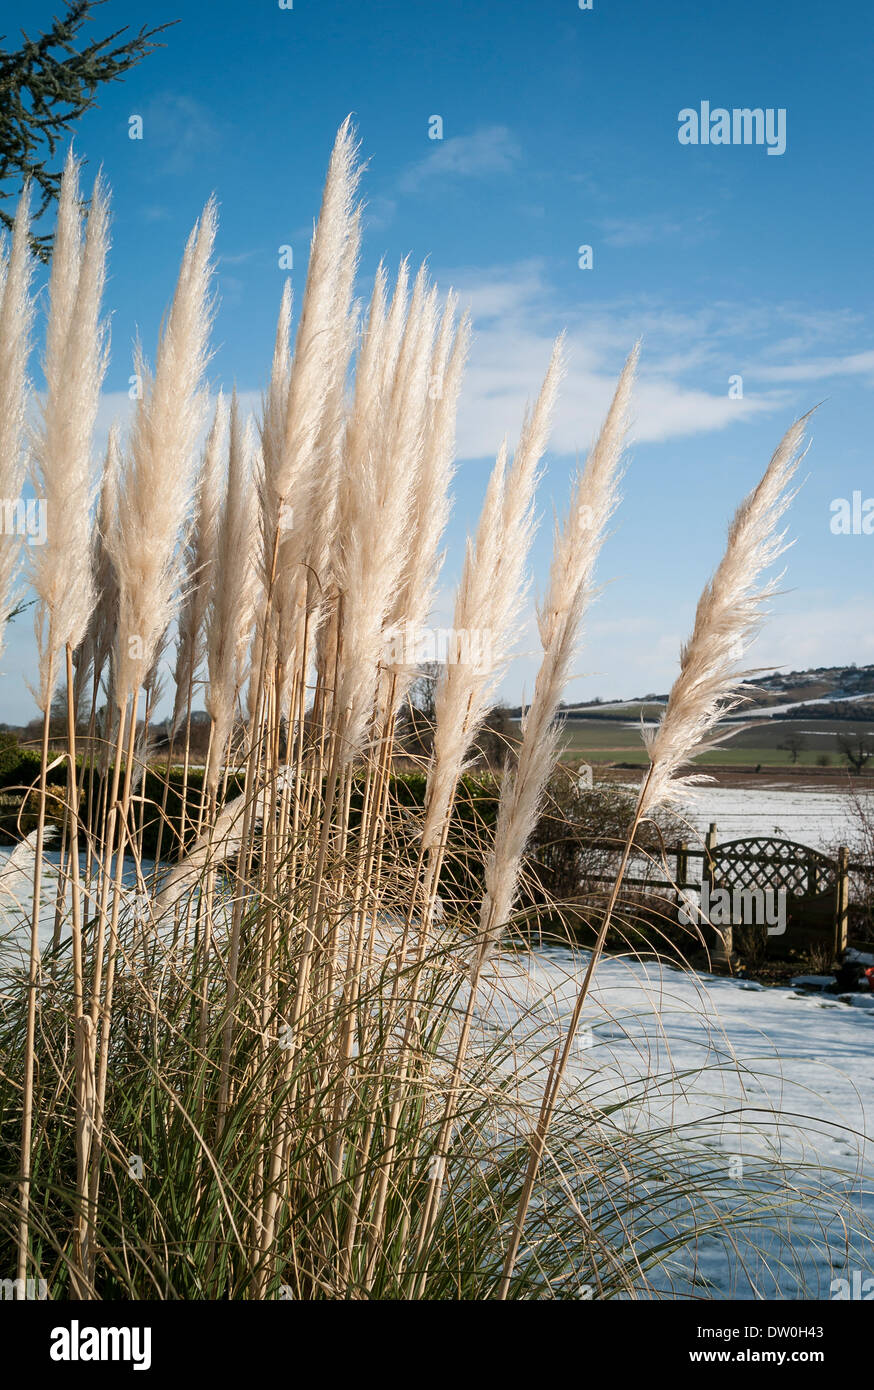 Pampas grass plumes in an English garden in winter - Stock Image